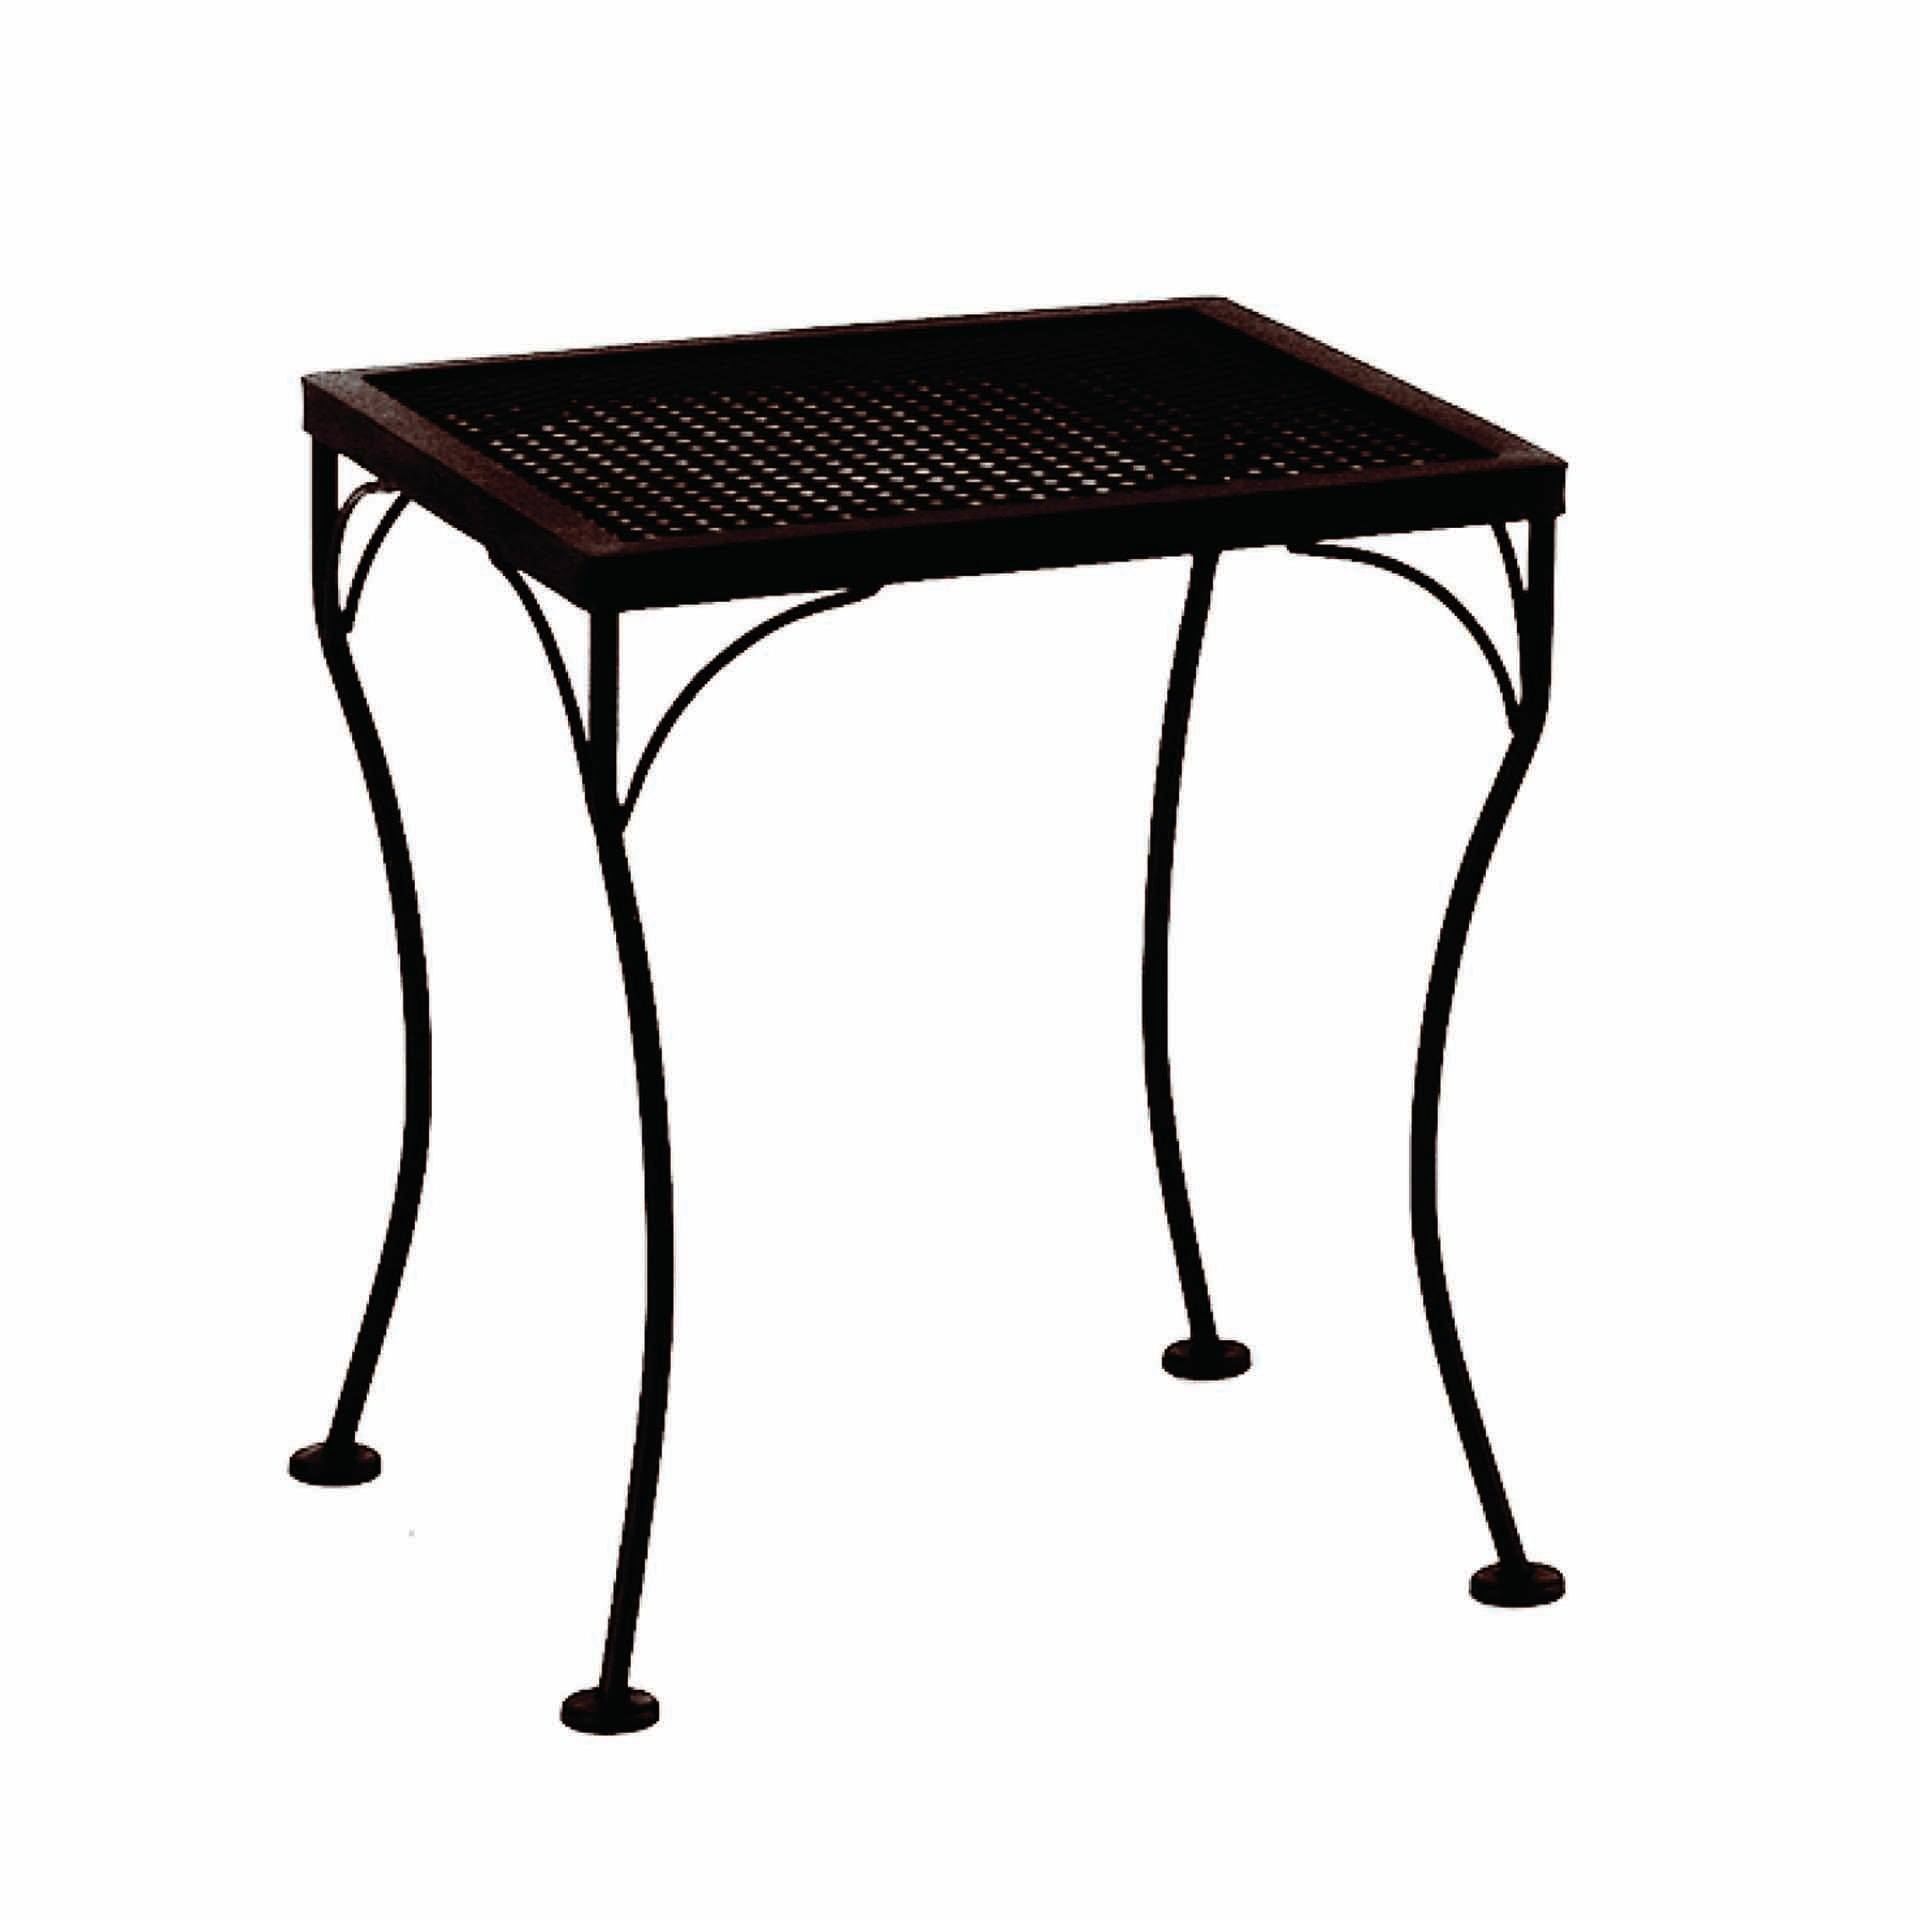 Ow Lee 18x16 Rectangular Micro Mesh Side Table Leisure